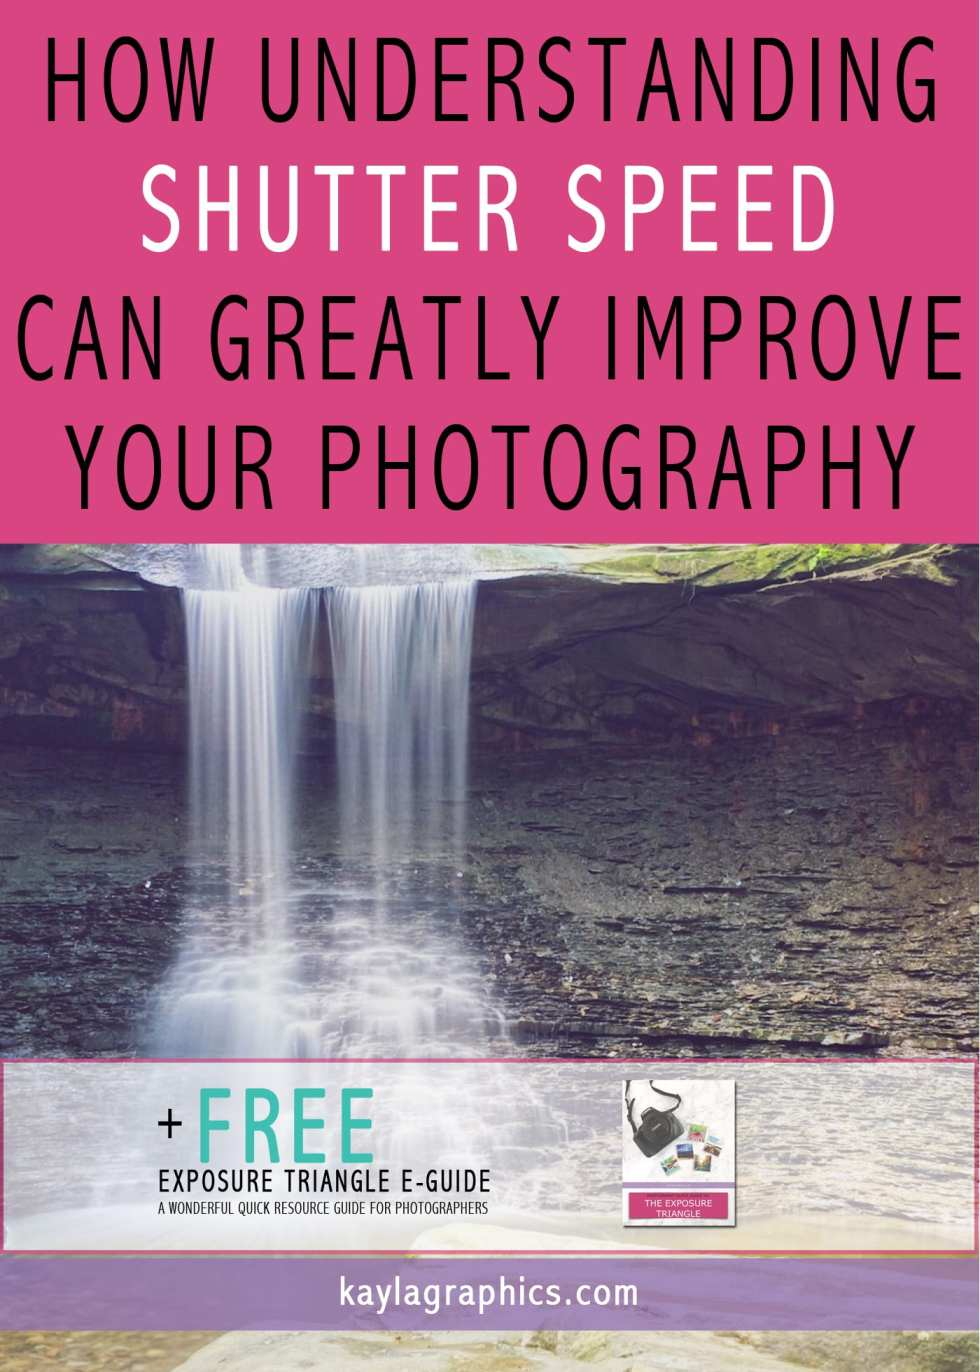 how understanding shutter speed can greatly improve photography plus free guide